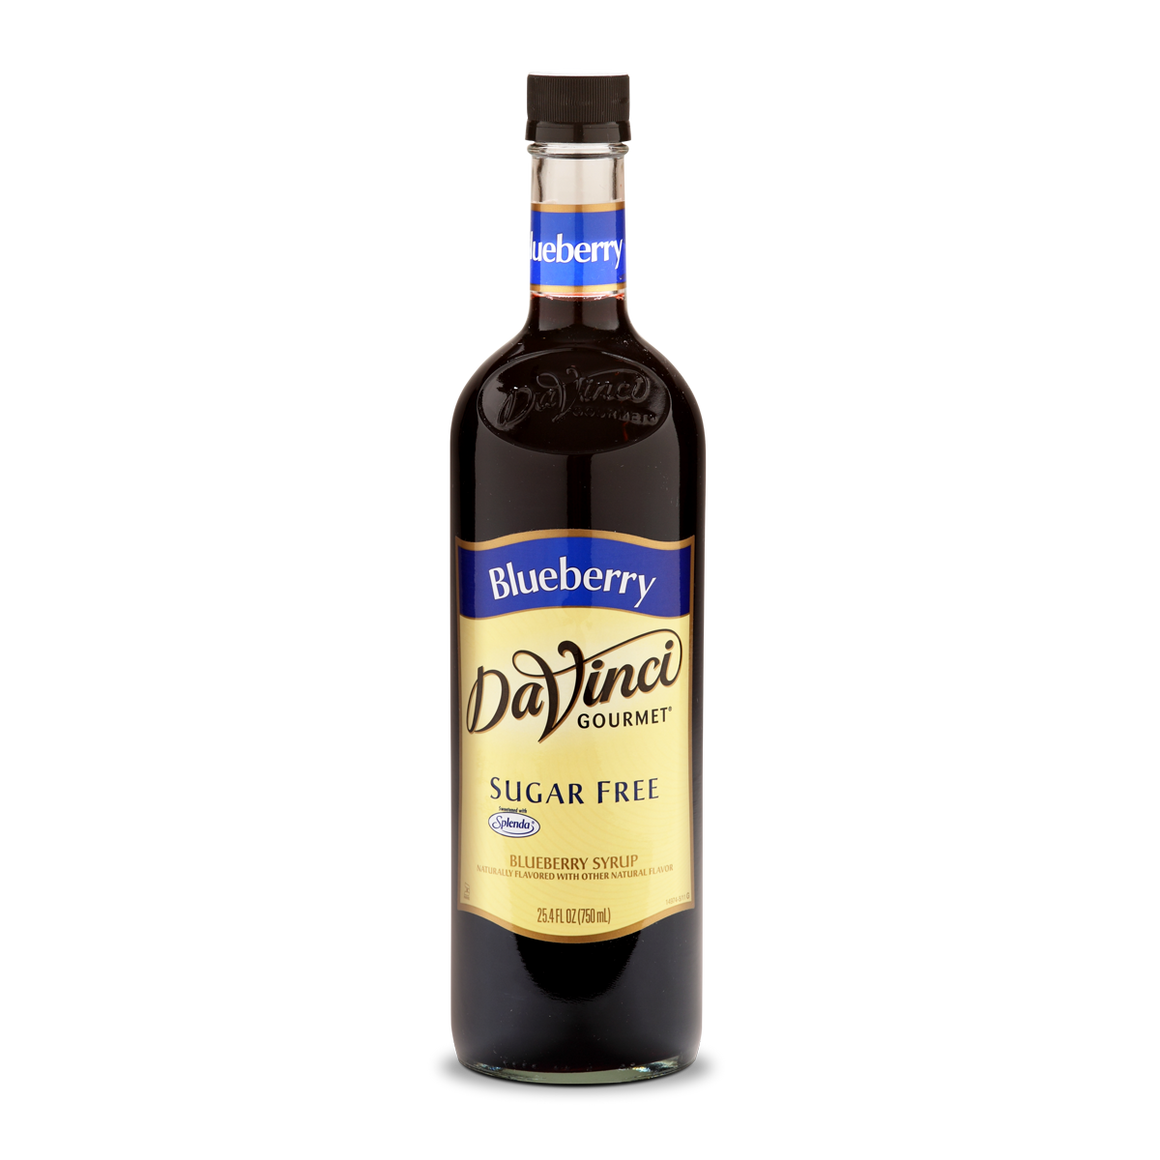 DaVinci - Sugar Free Syrup - Blueberry - 25.4 fl oz Bottle